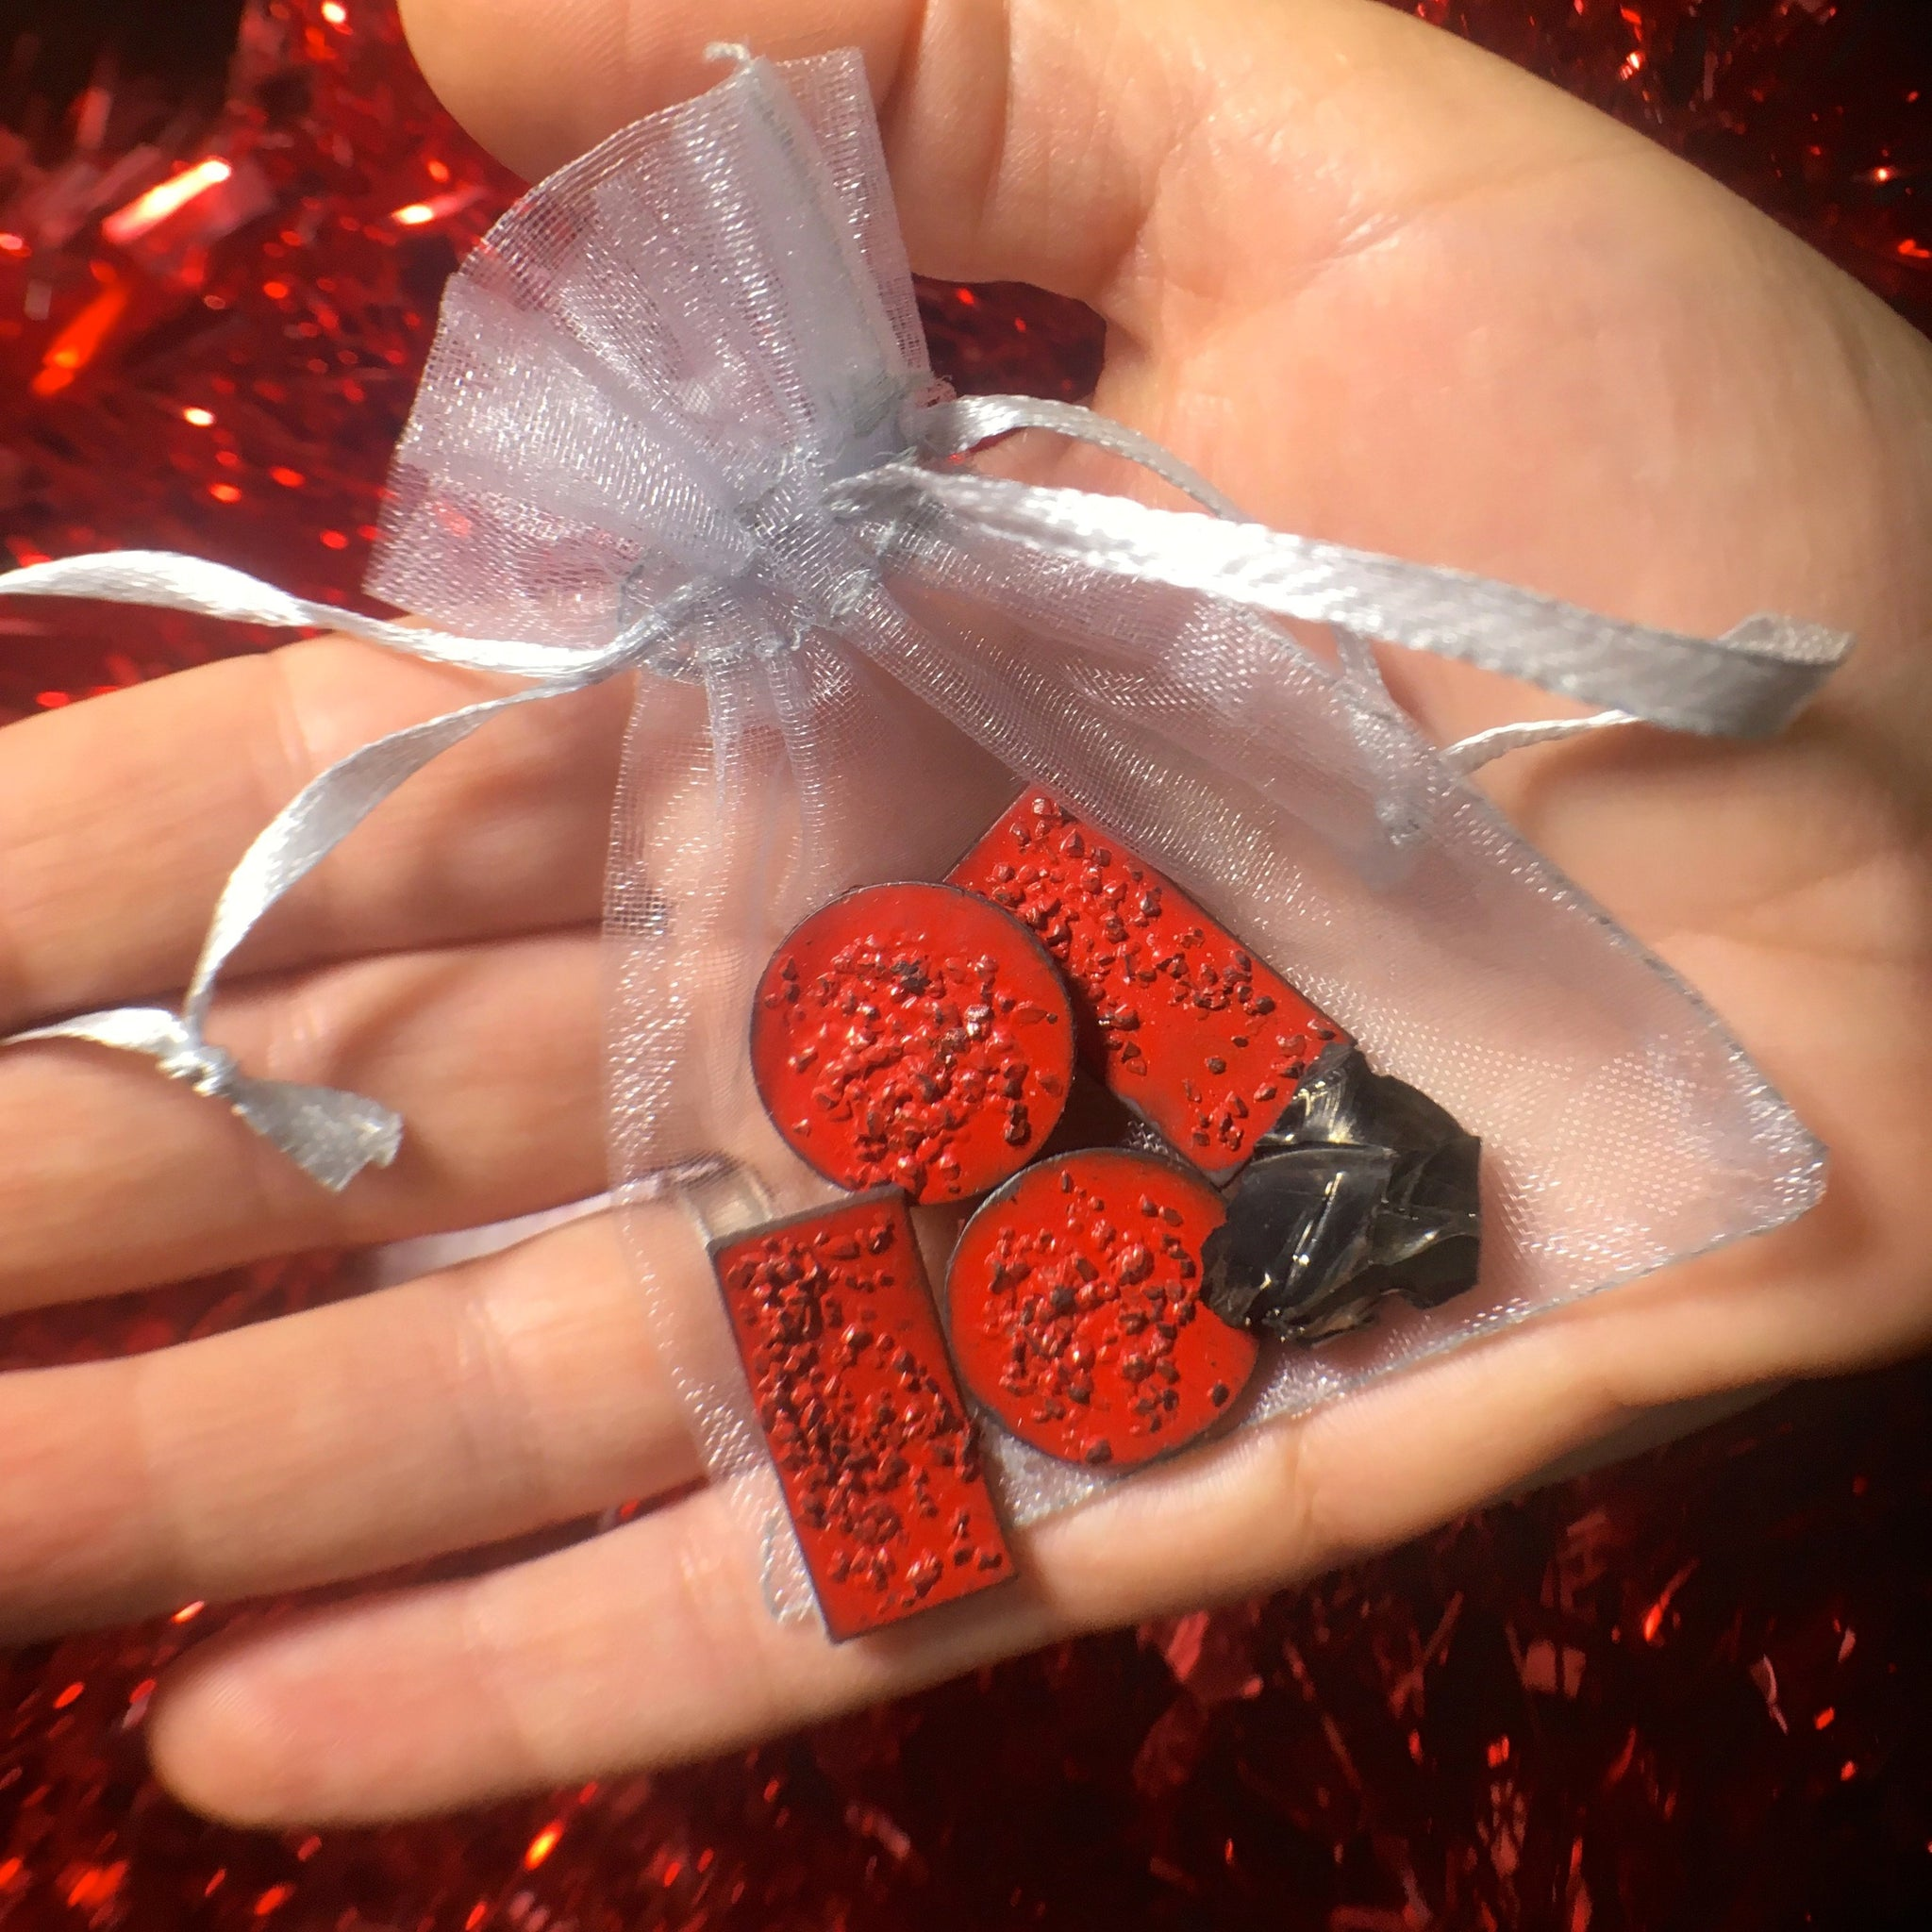 Shungite Gift Bag - (FREE with coupon while stocks last